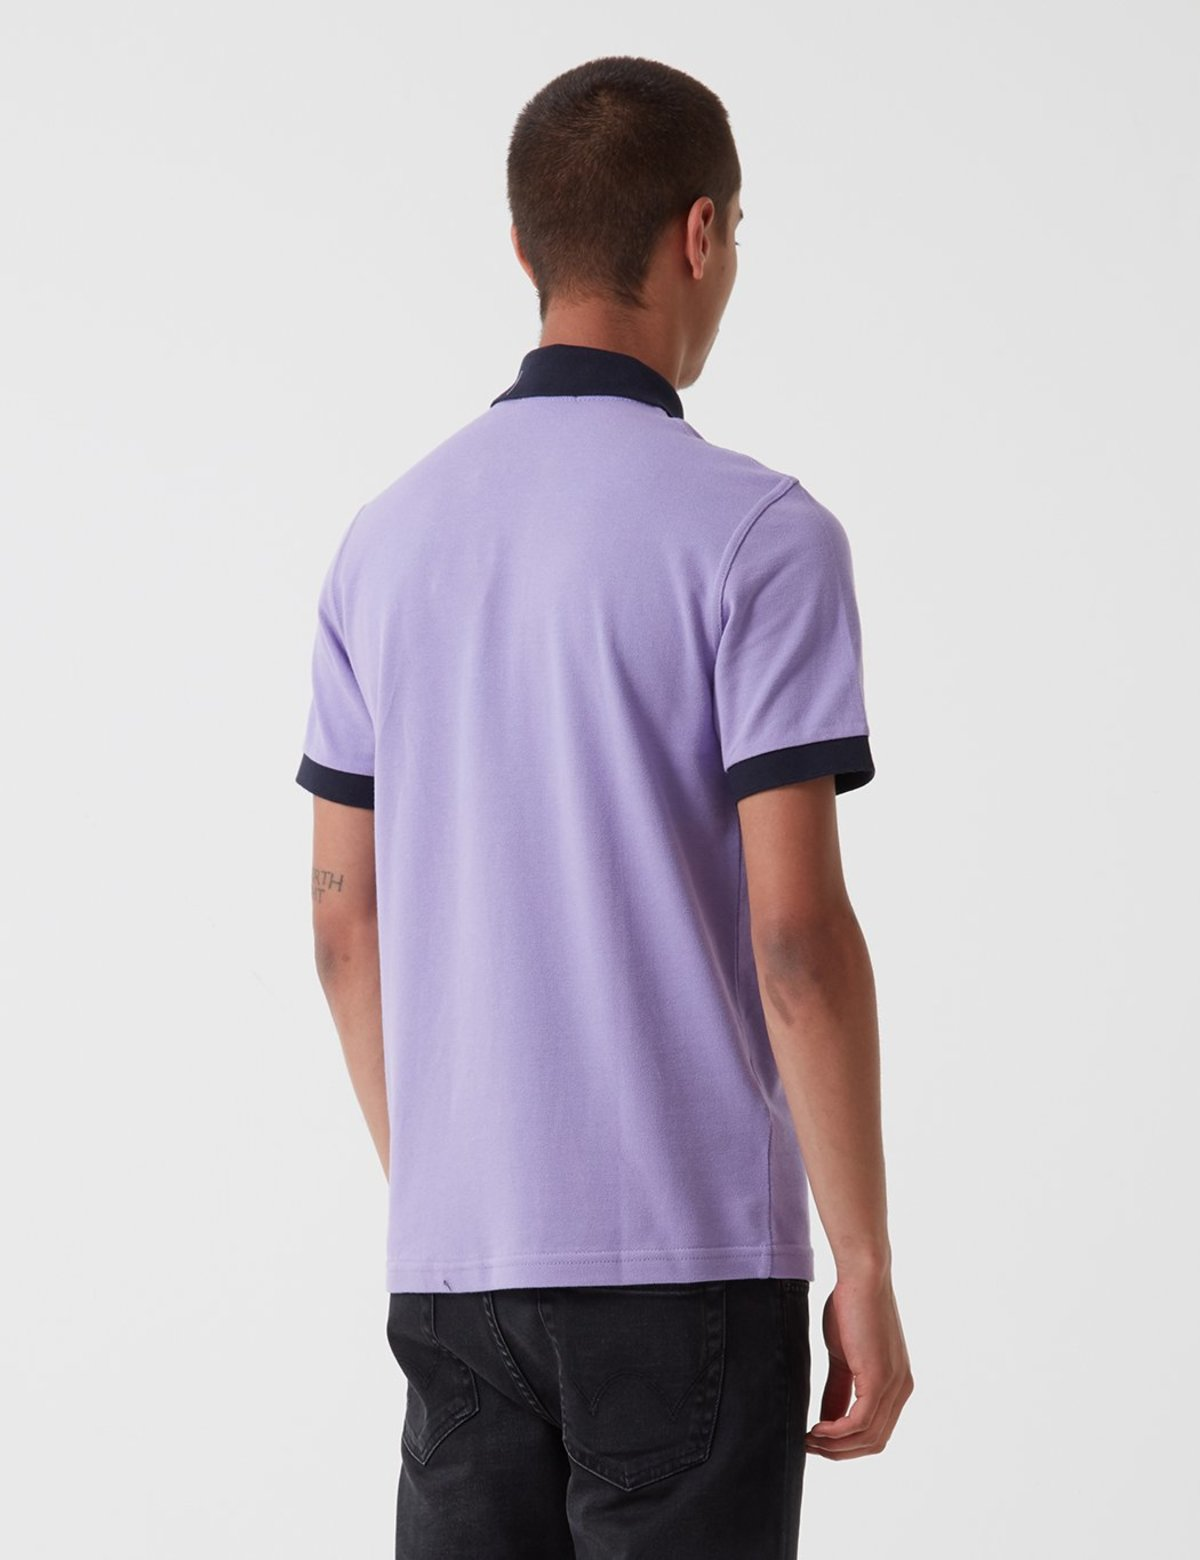 65b32ad14 Fred Perry Contrast Rib Pique Shirt - Soft Lilac